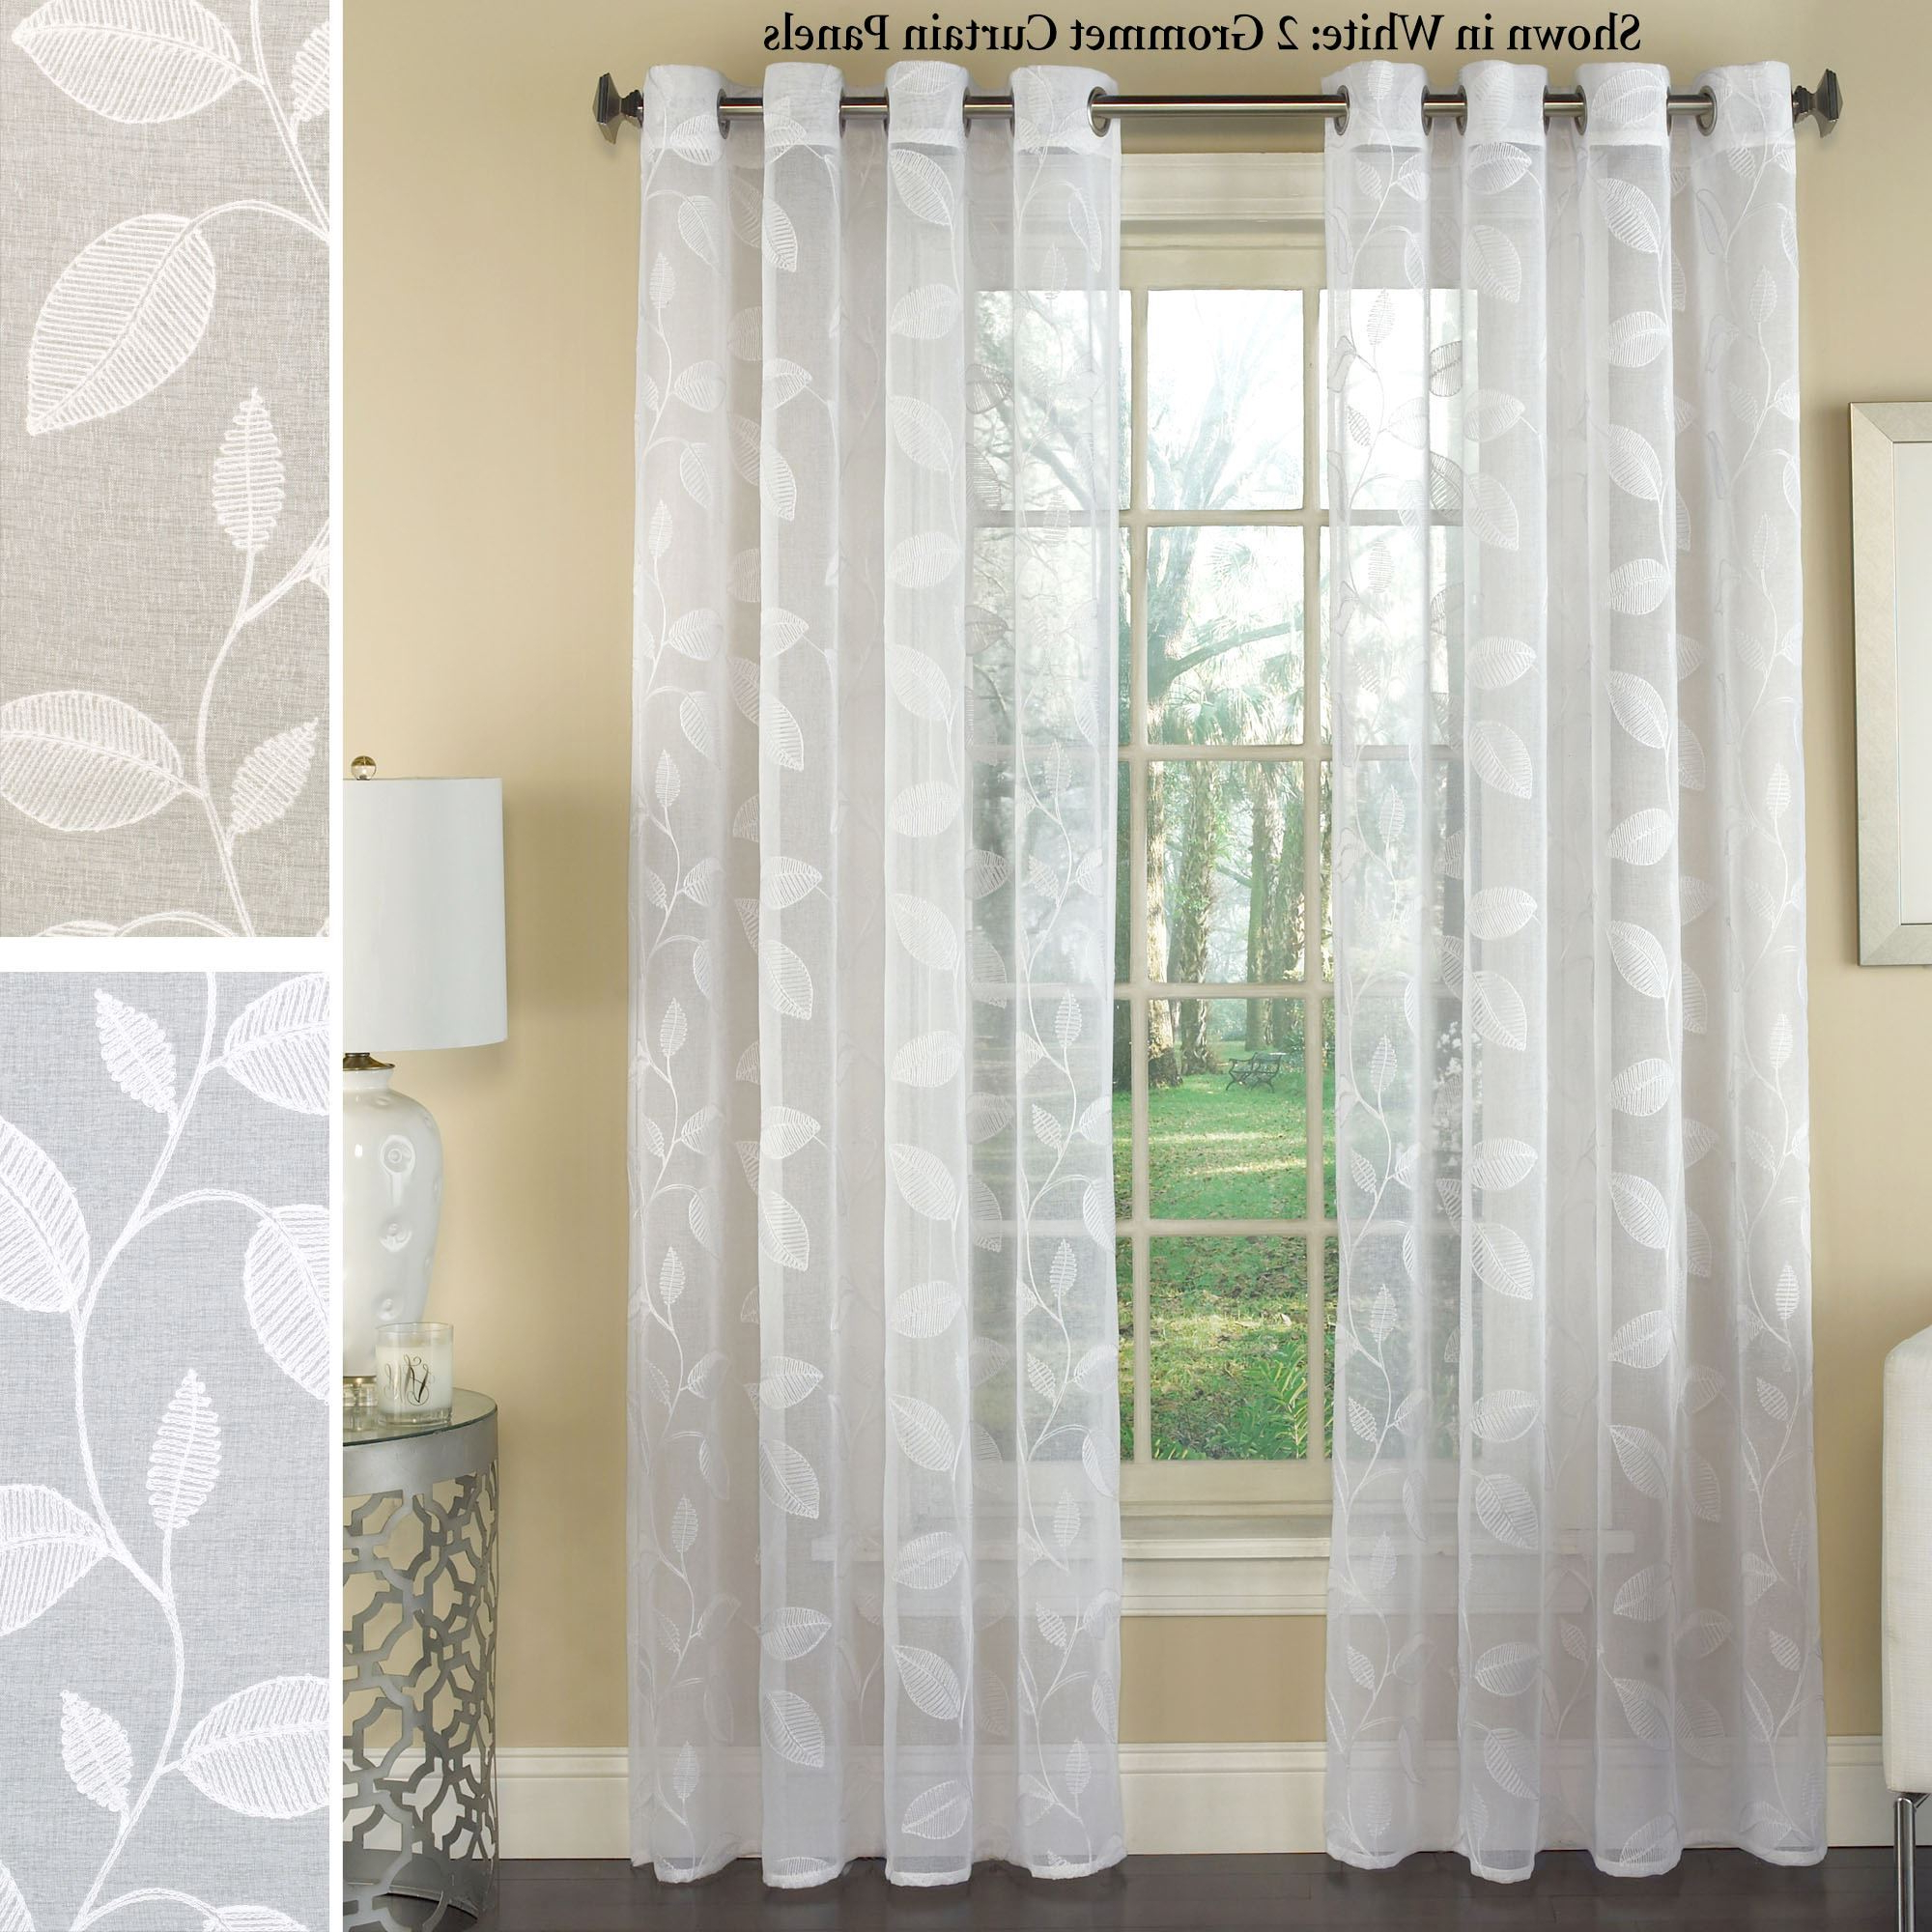 Modern Sheer Curtain Panels With Designs – Creative Design Ideas In Favorite Laya Fretwork Burnout Sheer Curtain Panels (View 16 of 20)